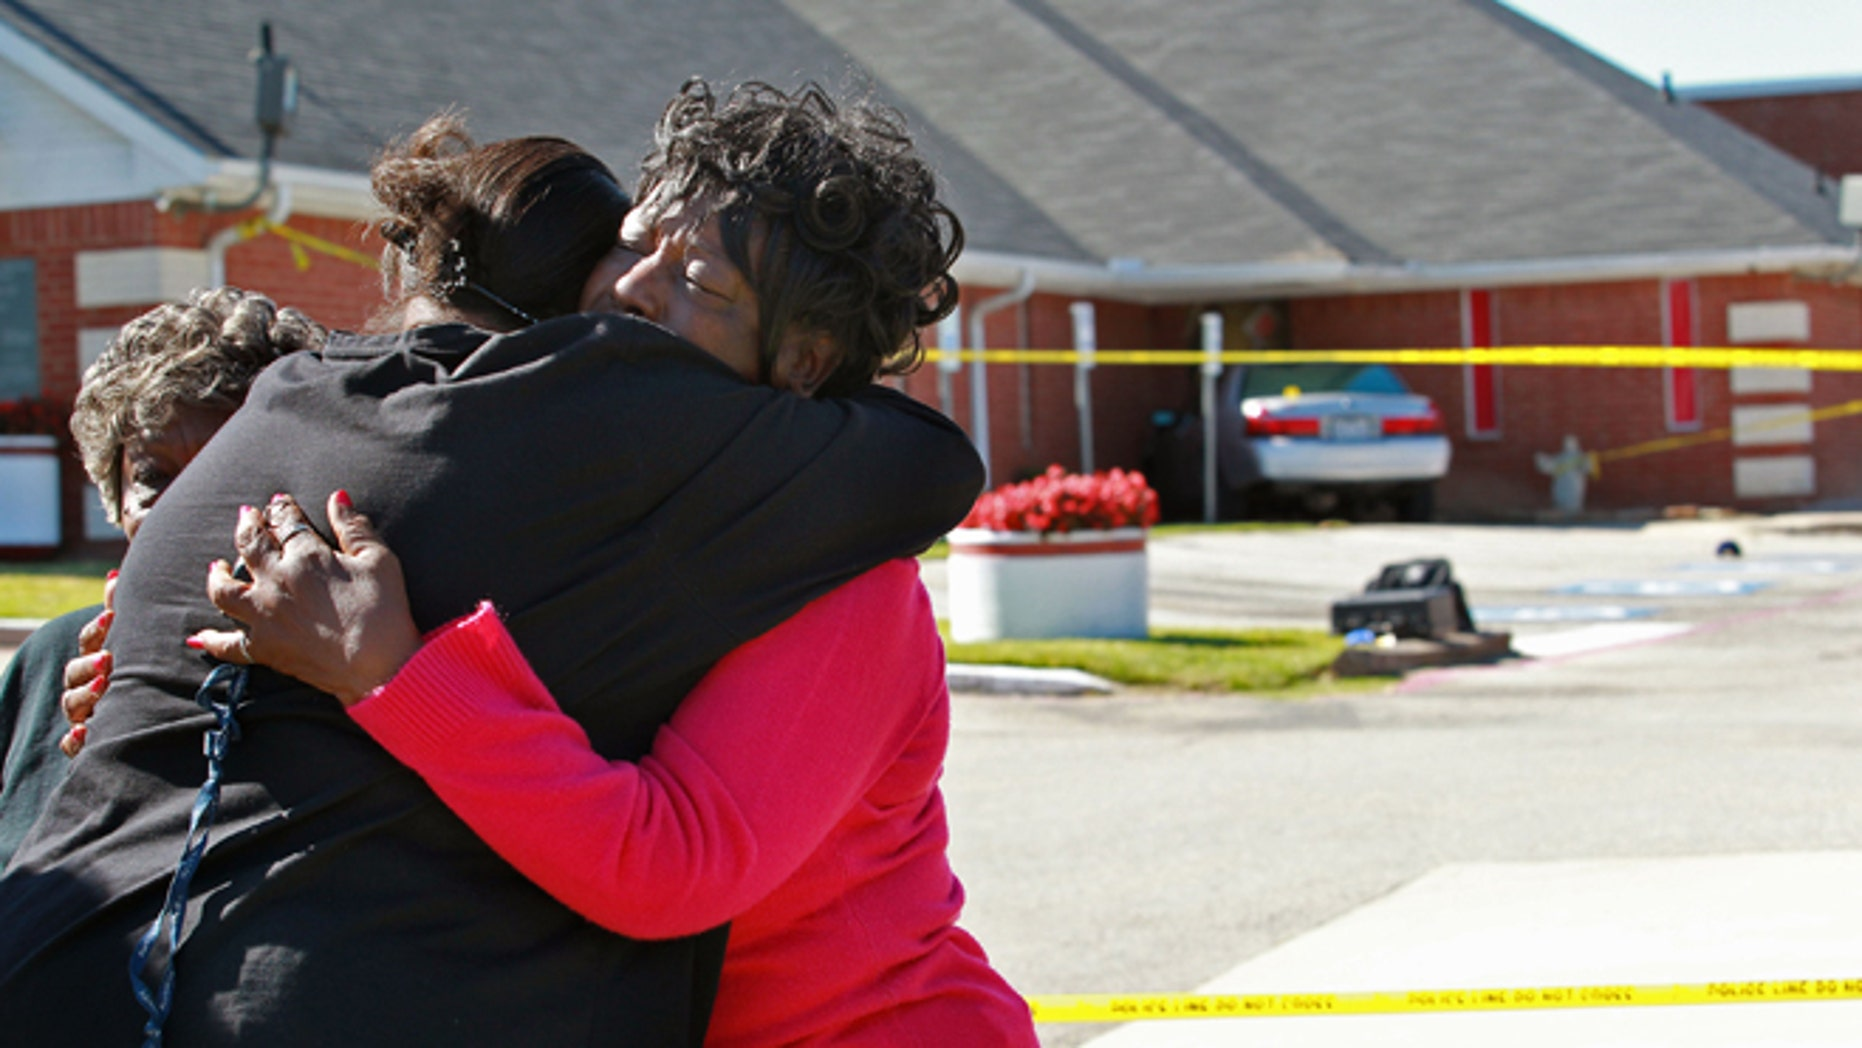 Oct. 29, 2012: People comfort one another outside of the Greater Sweethome Missionary Baptist Church in Forest Hill, Texas, after the church's founding pastor was killed Monday by an attacker who rammed a car, seen in background, into a church wall, chased the pastor and beat him with an electric guitar, according to police.